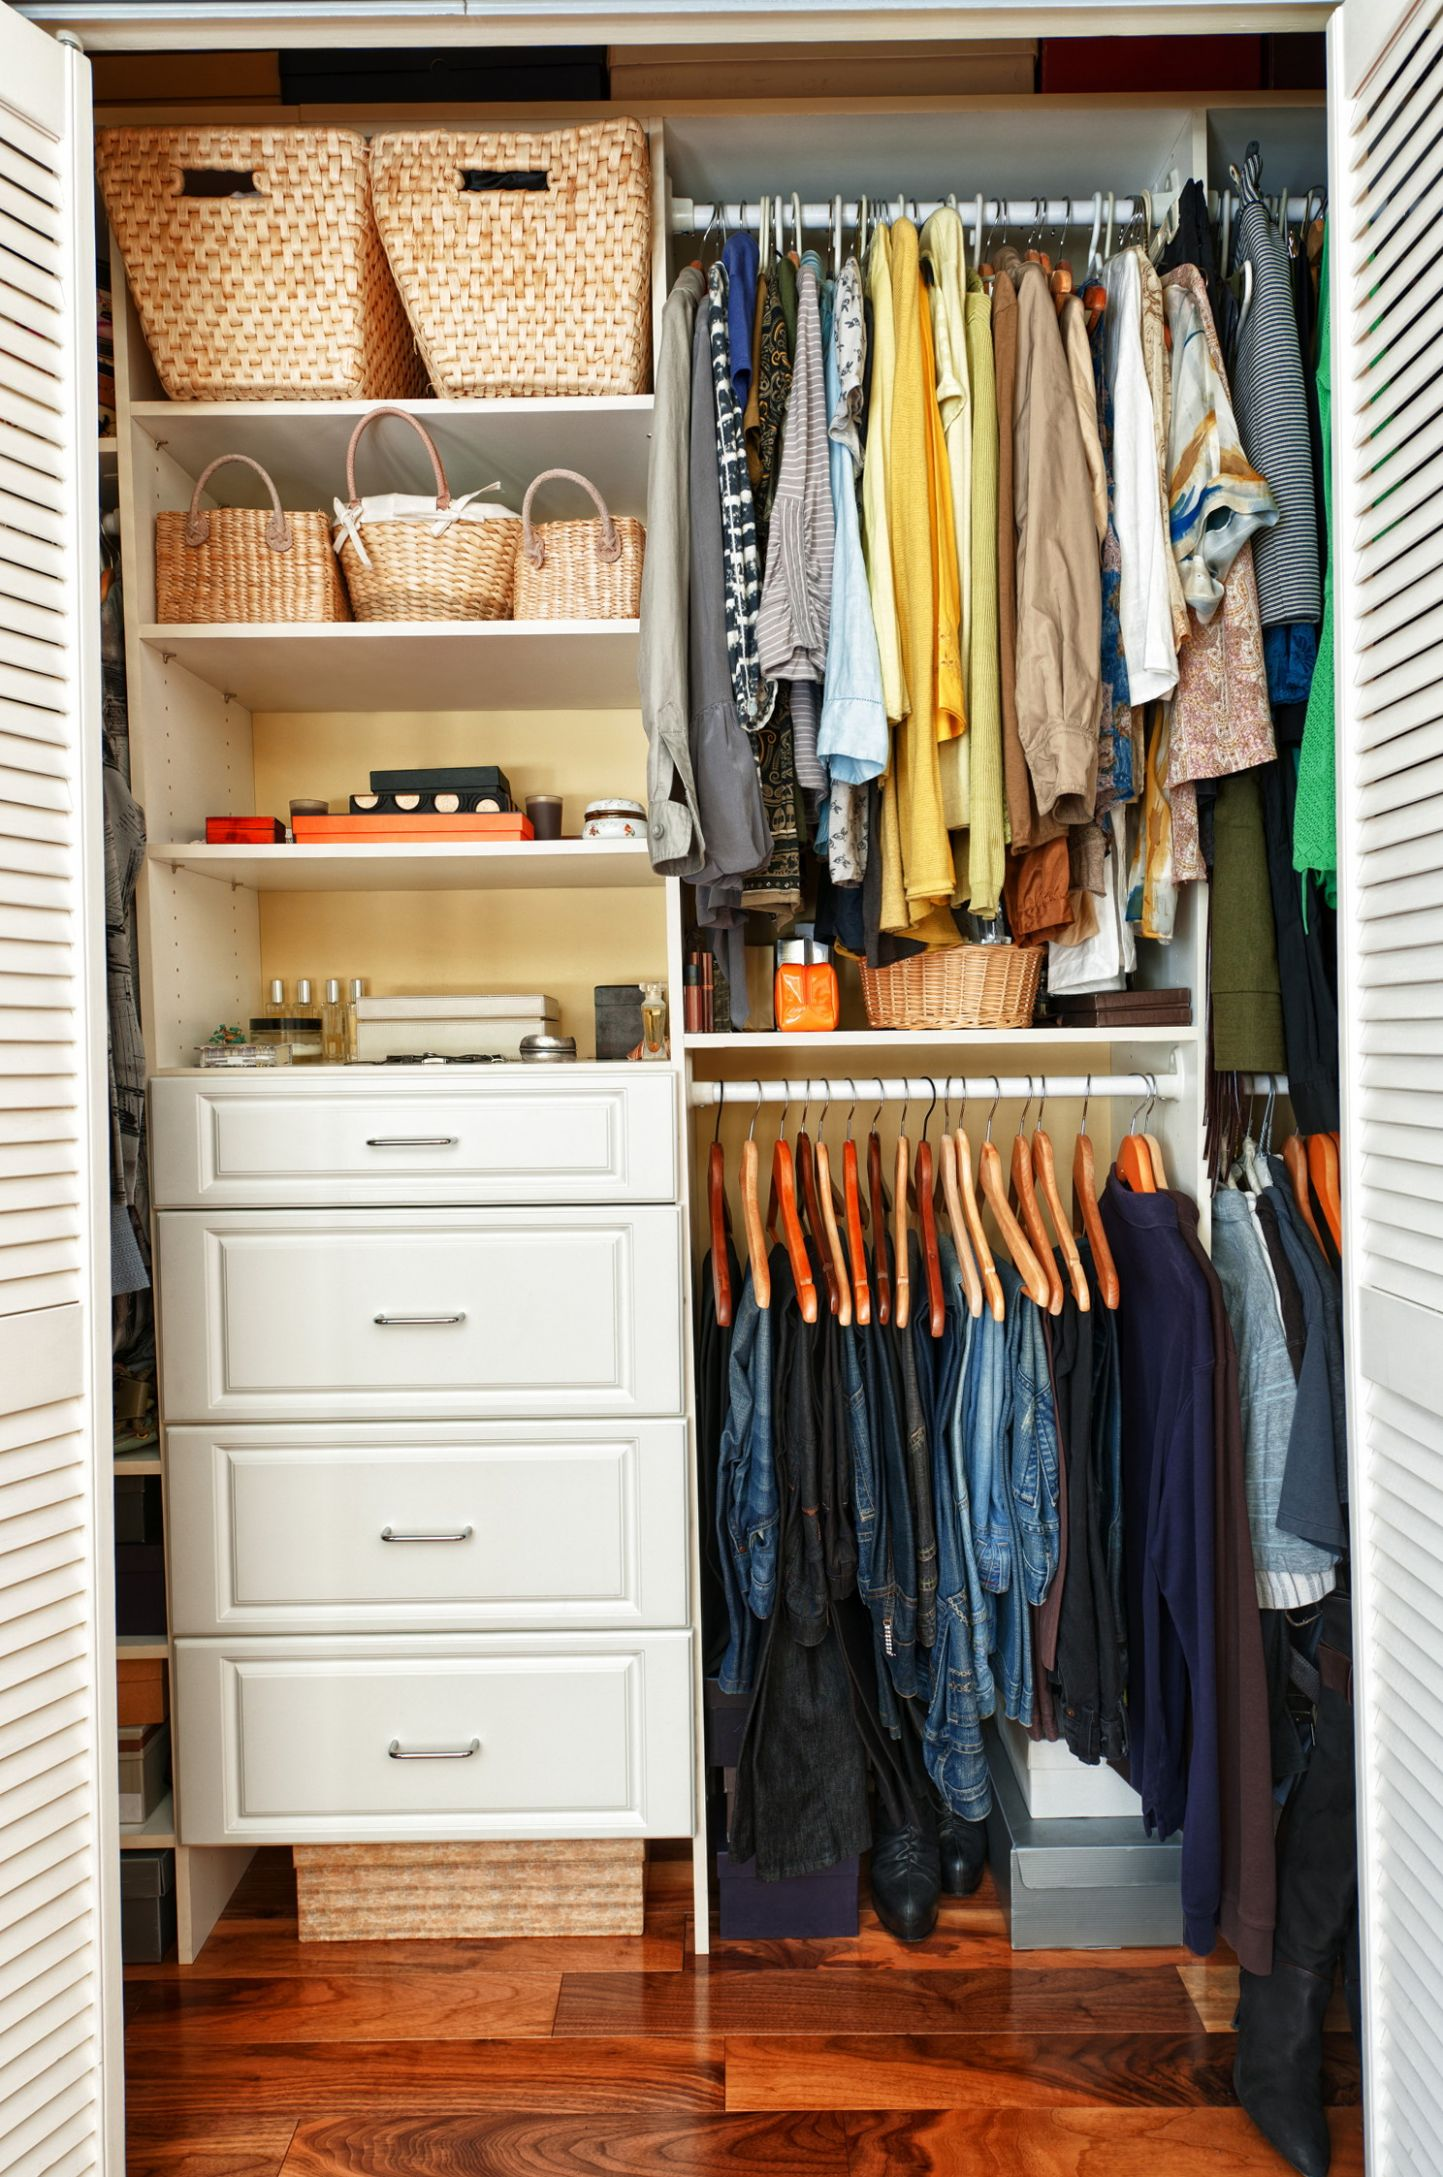 Small Bedroom Closet Organization Design How To Cover Without ..